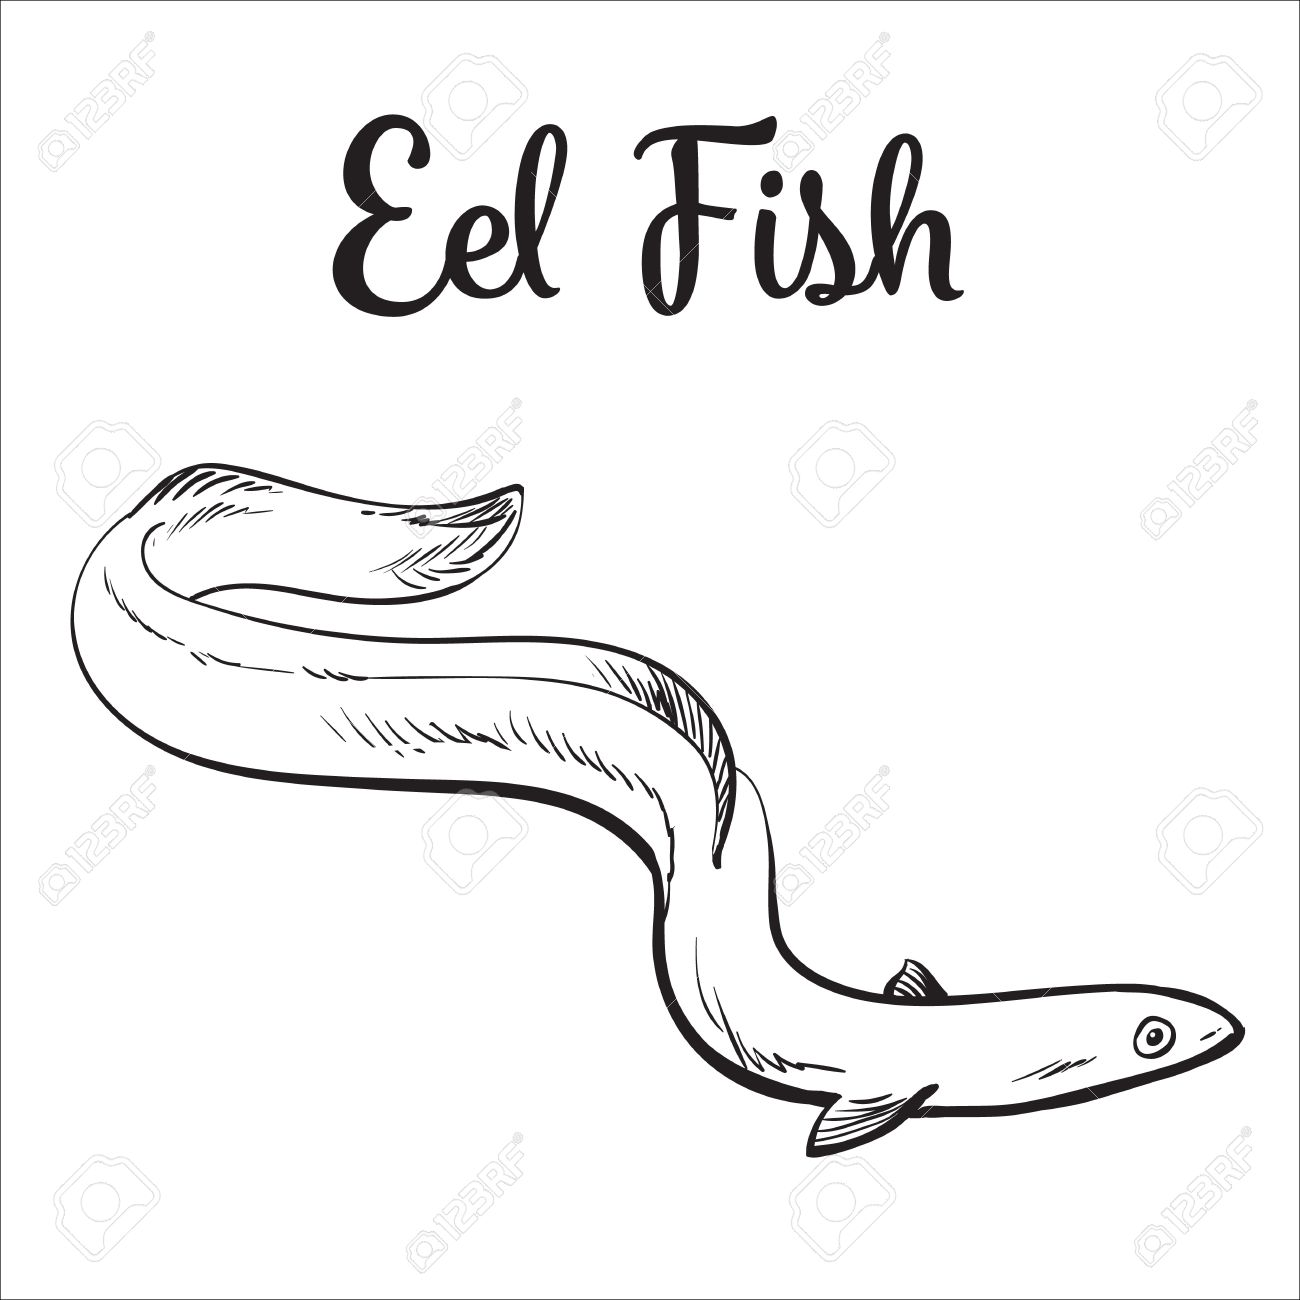 1300x1300 Live Eel Fish, Sketch Style Vector Illustration Isolated On White